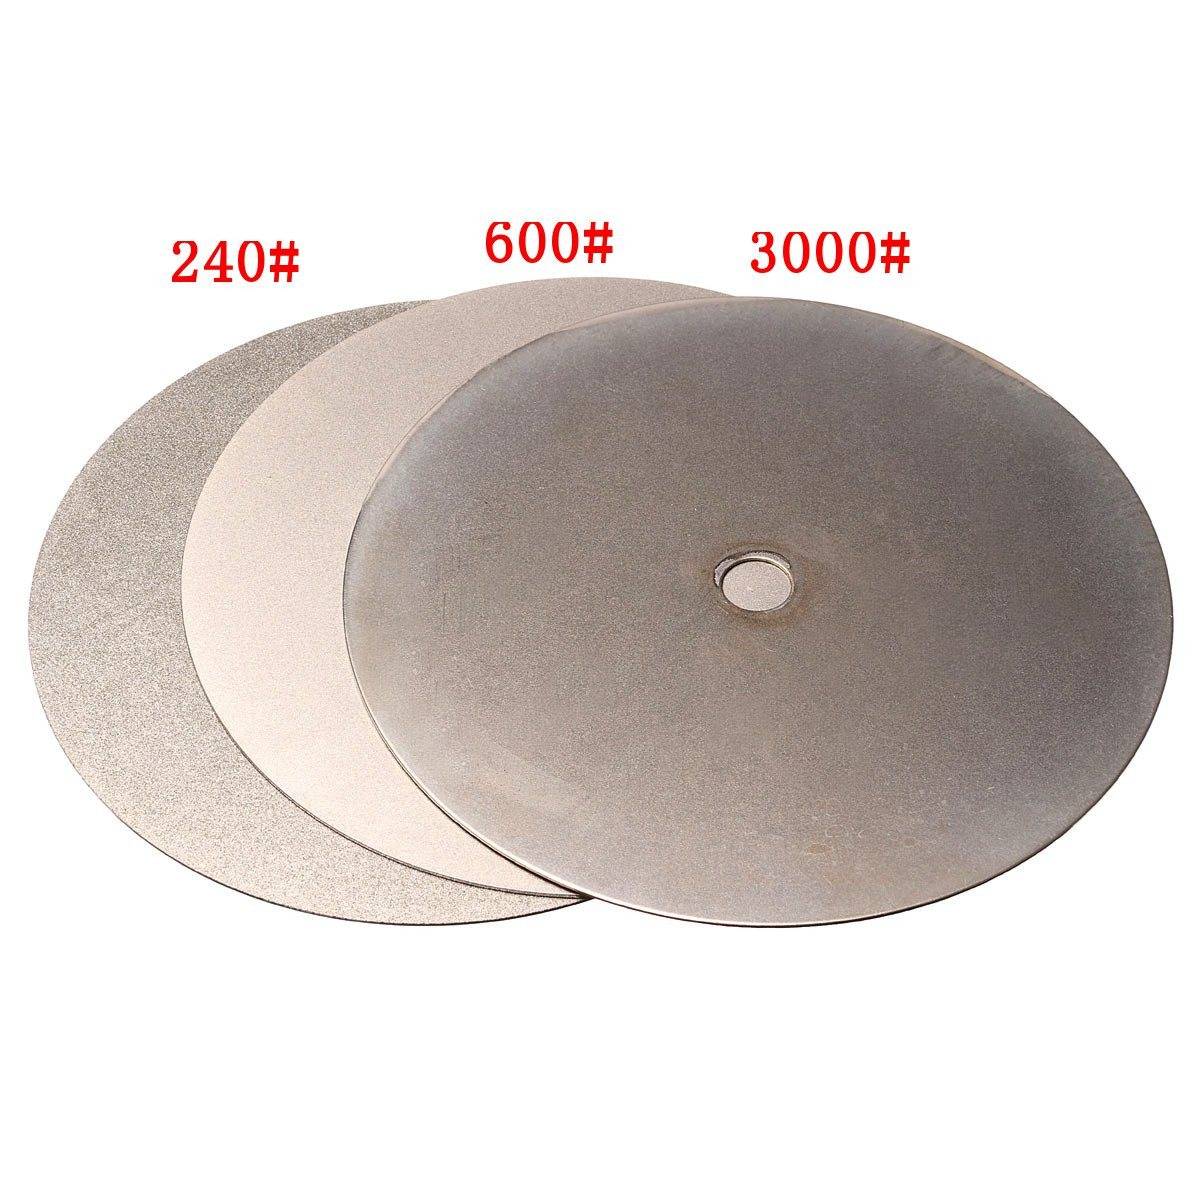 3Pcs 150mm 6 Inch Diamond Grinding Wheel Grit 240# 600# 3000# Flat Lap Disk Wheel Grinding Pad Tool Power Tool Accessories 3pcs 2 6 inch grit 240 600 1000 kit thin flat diamond stone sharpeners knife fine medium coarse